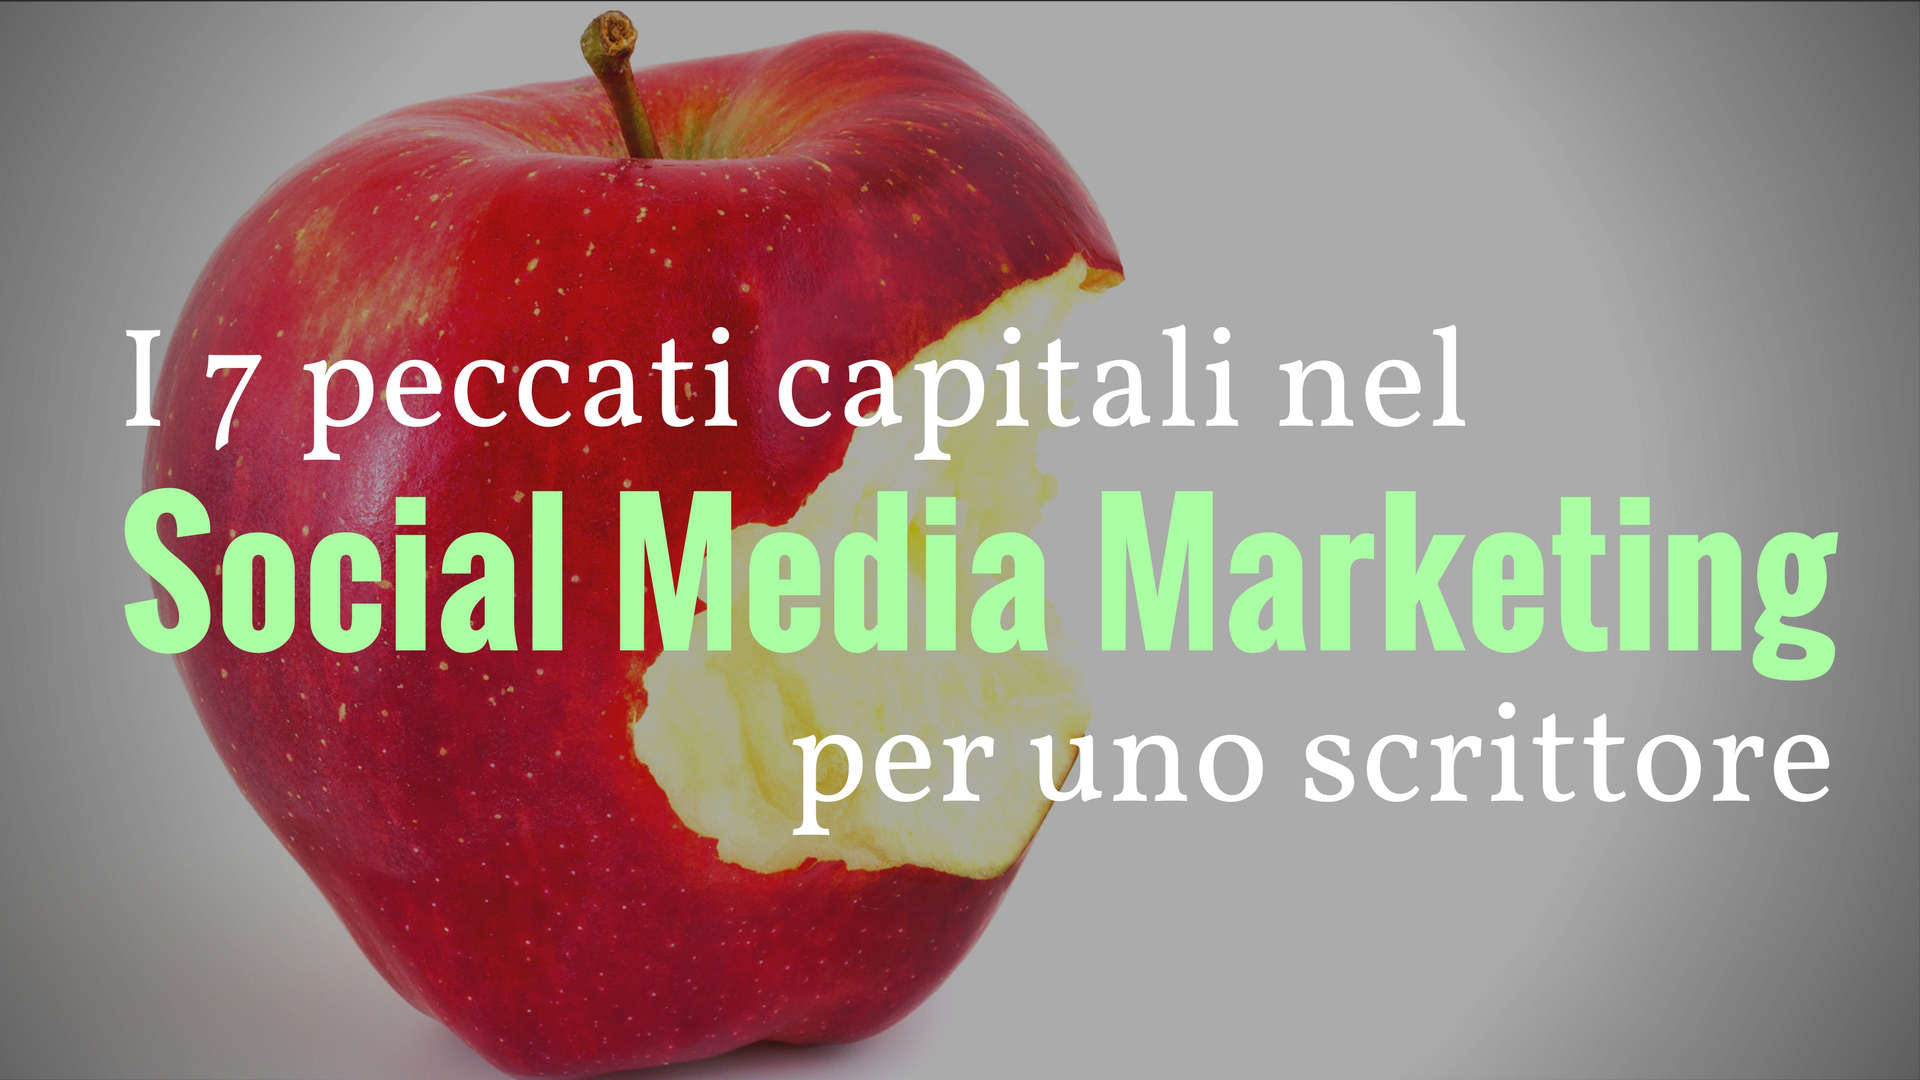 Social Media Marketing per uno scrittore